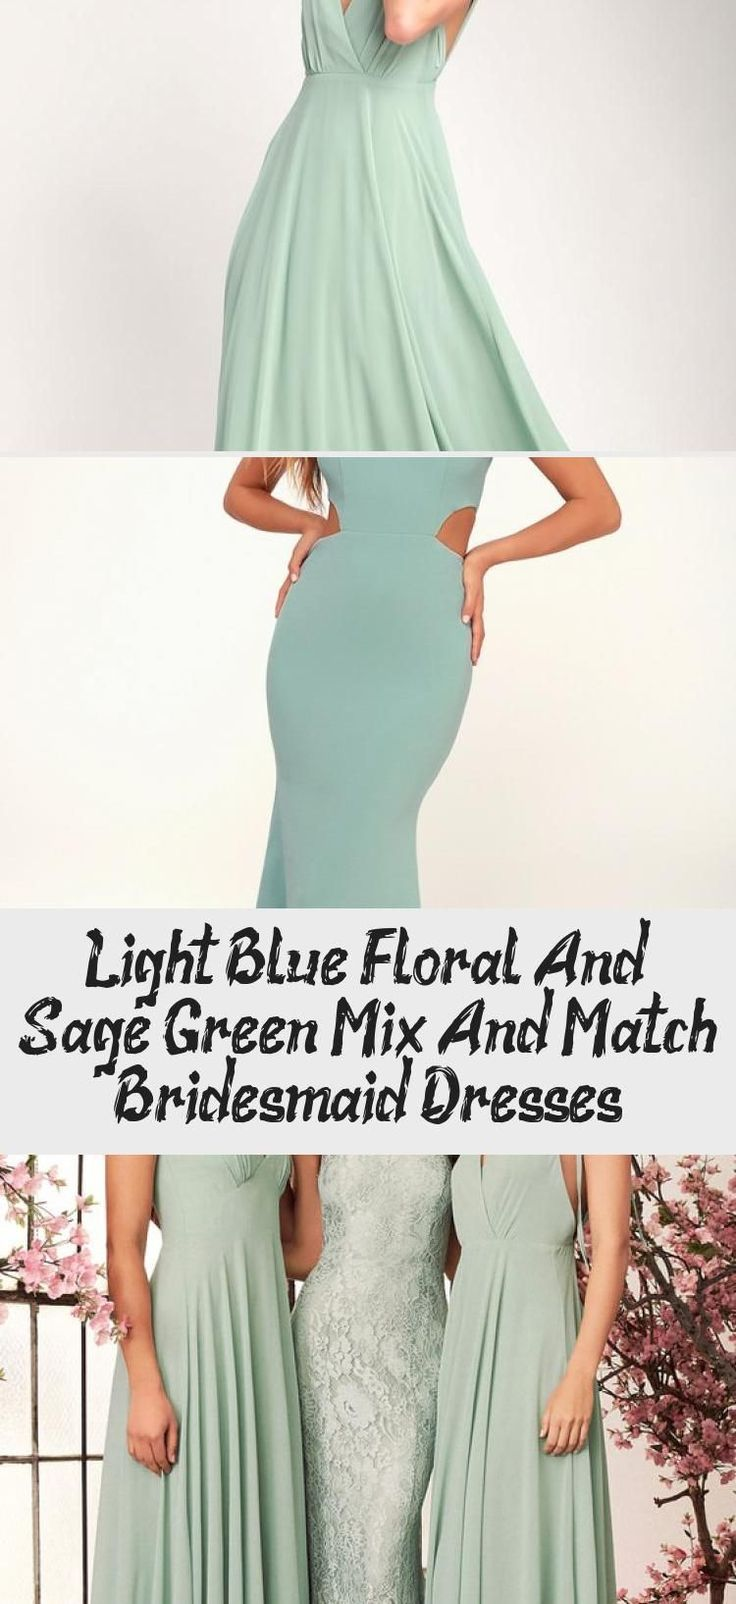 Light Blue, Floral, And Sage Green Mix And Match Bridesmaid Dresses #sagegreenbridesmaiddresses Blue floral and mist sage green mismatched bridesmaid dresses by Jenny Yoo #BlushBridesmaidDresses #BridesmaidDressesSummer #PinkBridesmaidDresses #BridesmaidDressesStyles #BridesmaidDressesWithSleeves